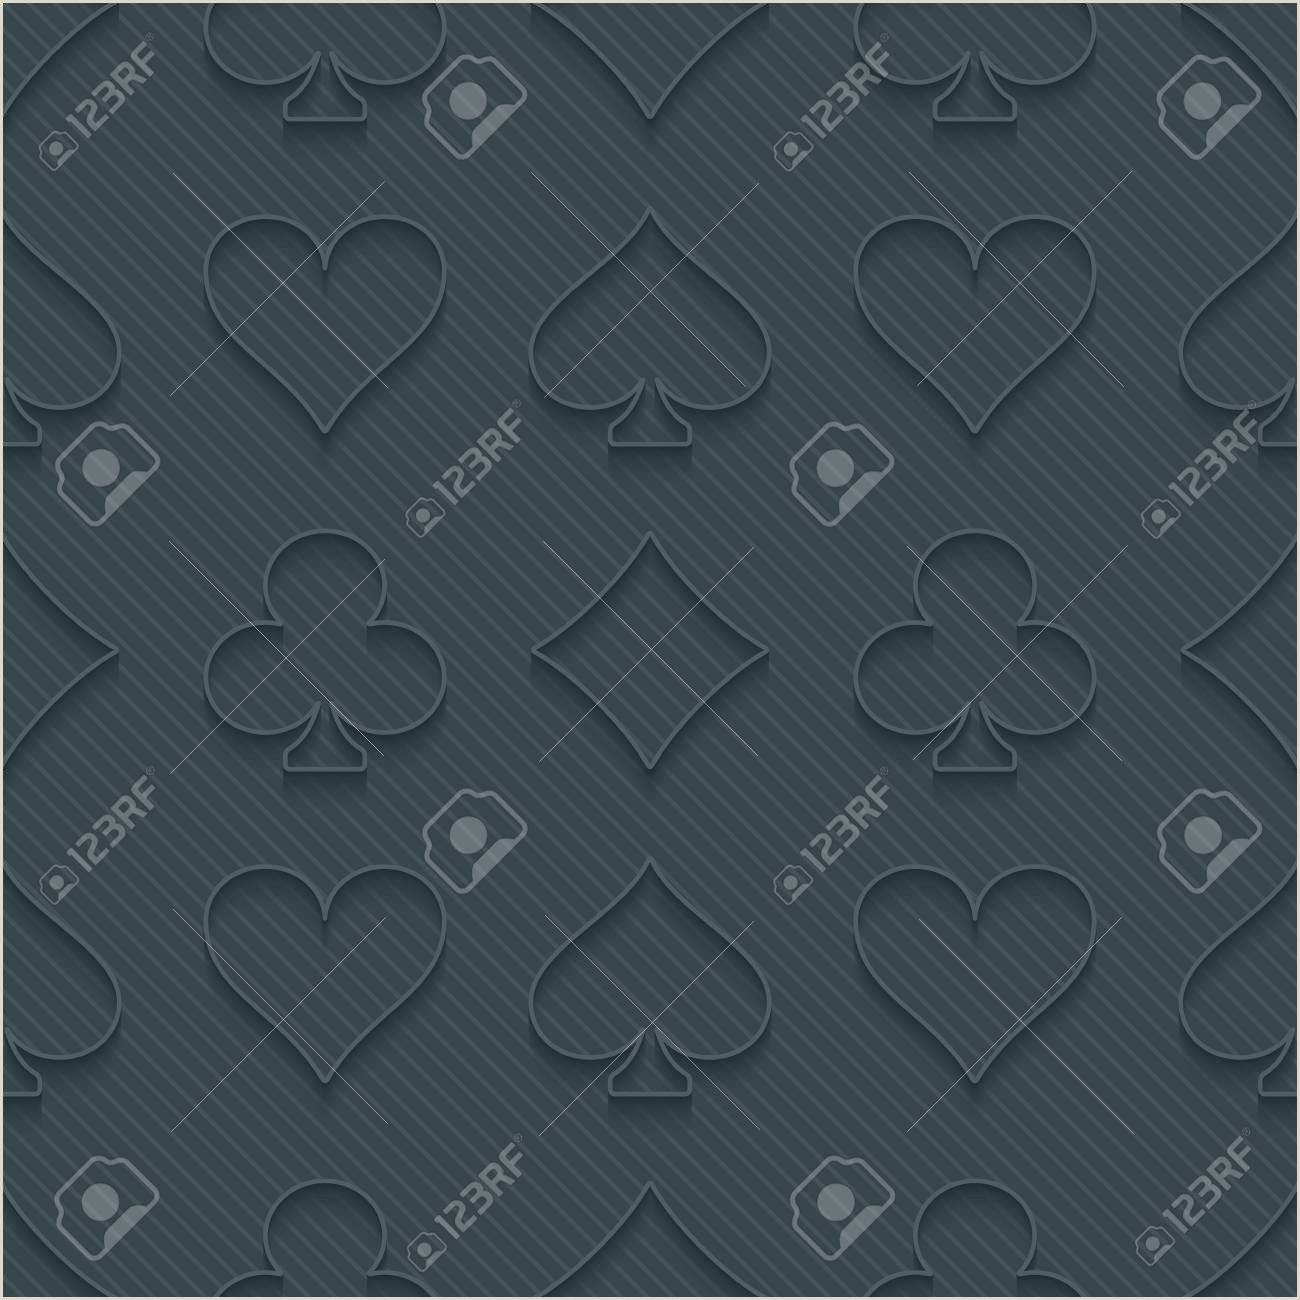 Colored Perforated Business Card Stock Dark Perforated Paper With Cut Out Effect 3d Card Symbol Seamless